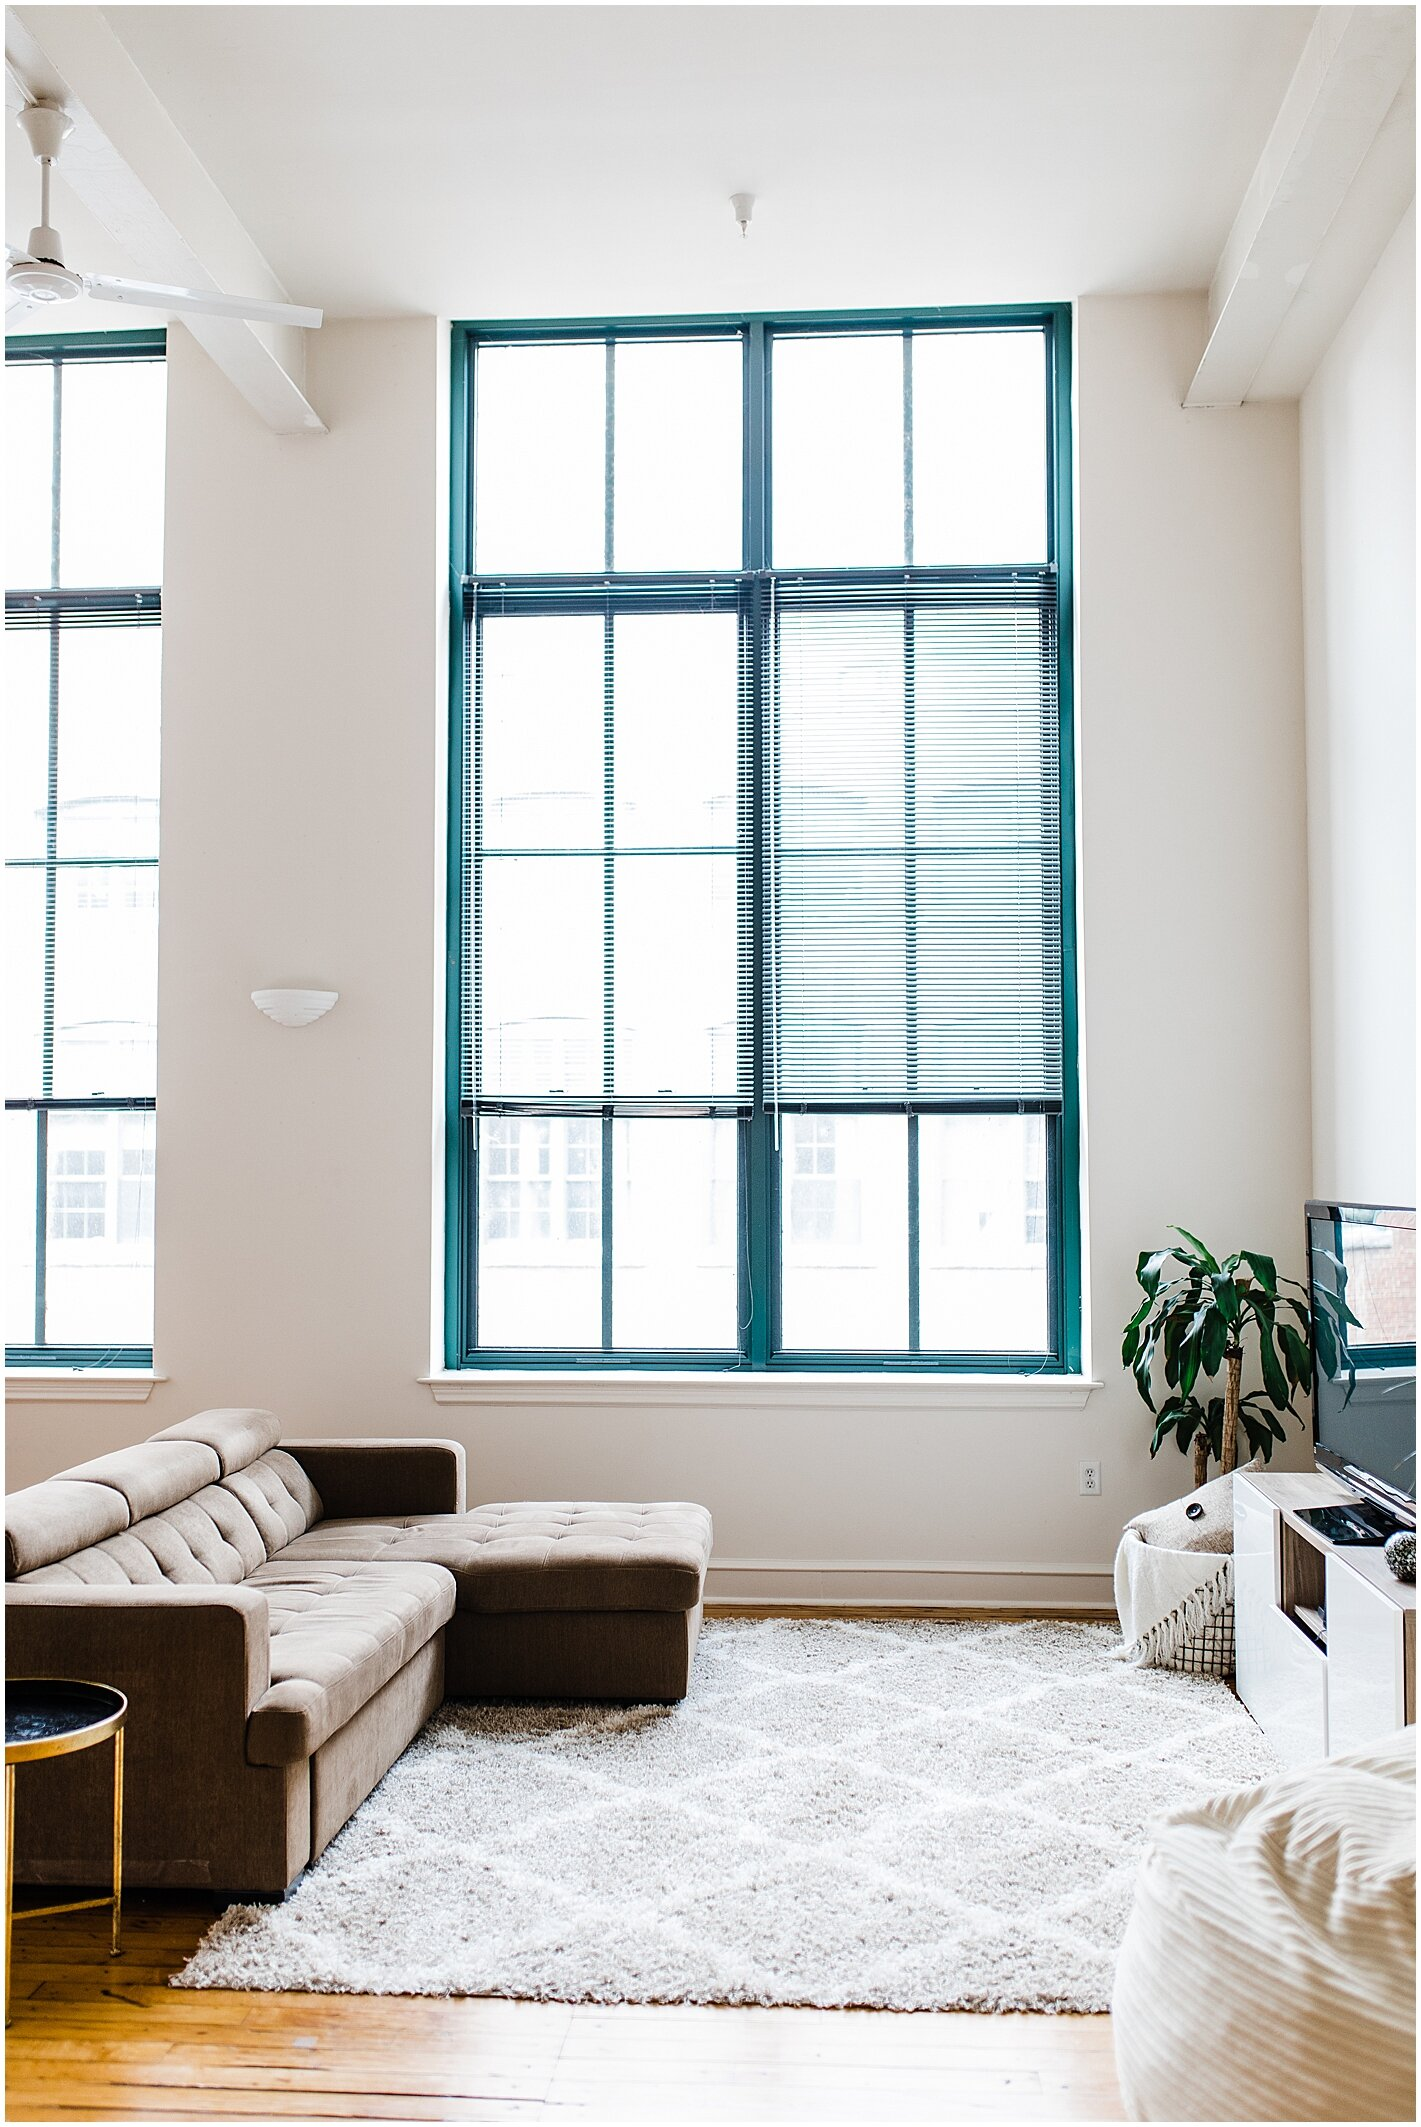 We are going to miss these windows and high ceilings